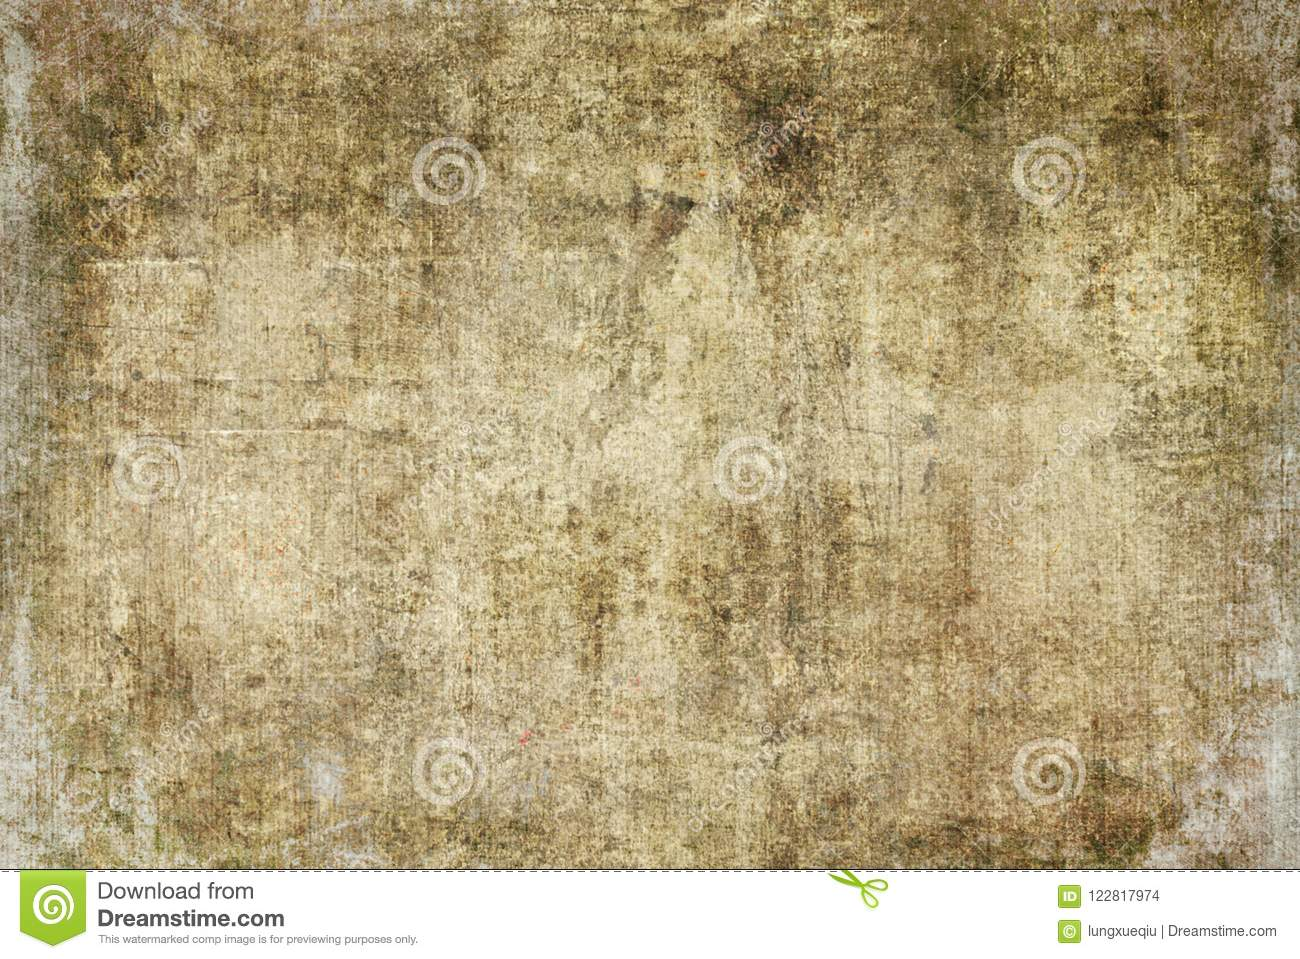 Nature Brown Cracked Grunge Dark Rusty Distorted Decay Old Abstract Canvas Painting Texture Pattern Autumn Background Wallpaper